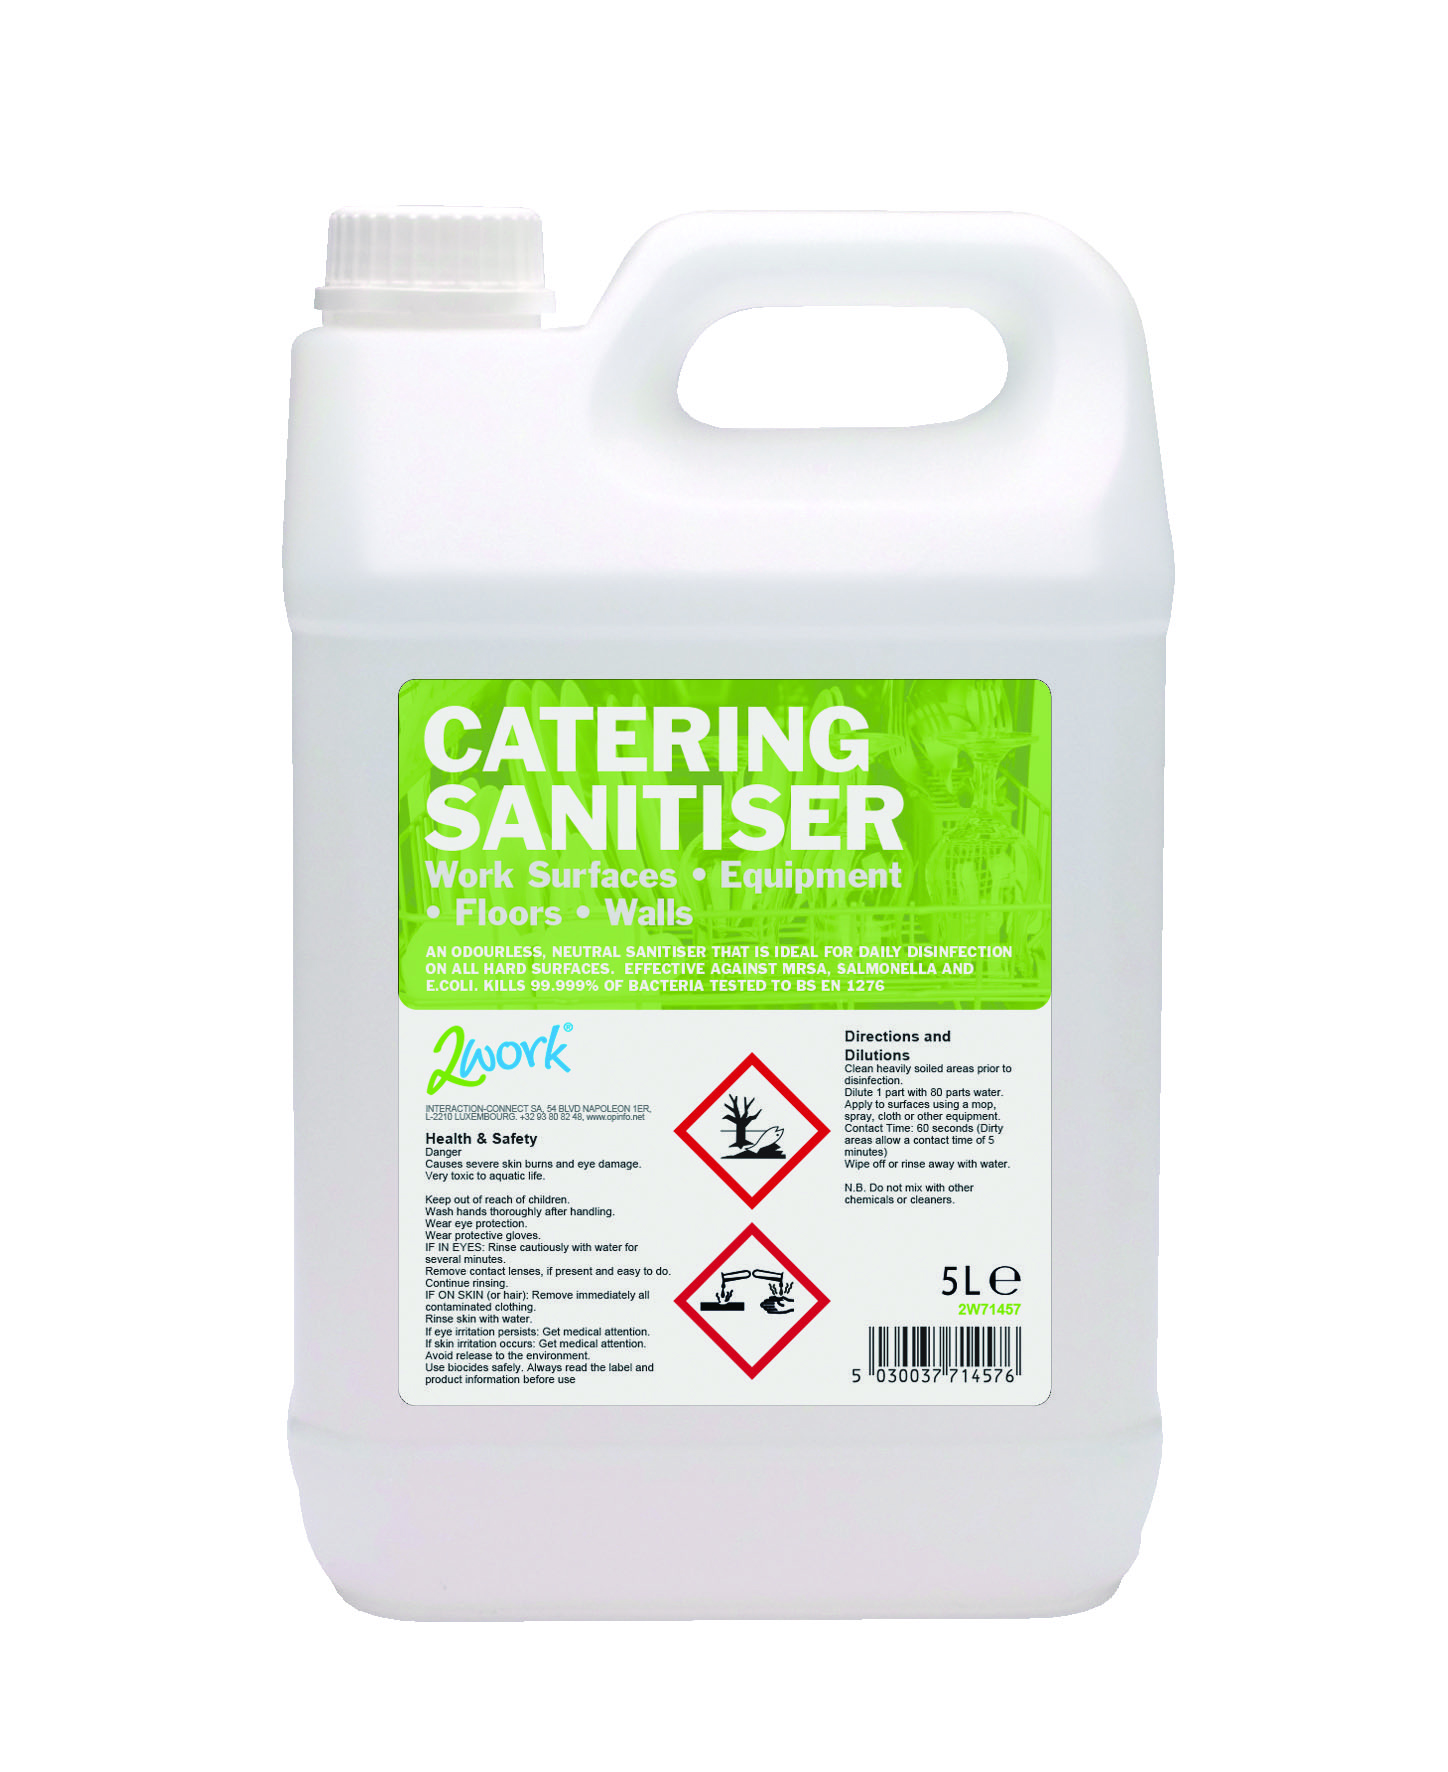 Do different dilutions of disinfectants affect the development of - 2work Catering Sanitiser 5lt